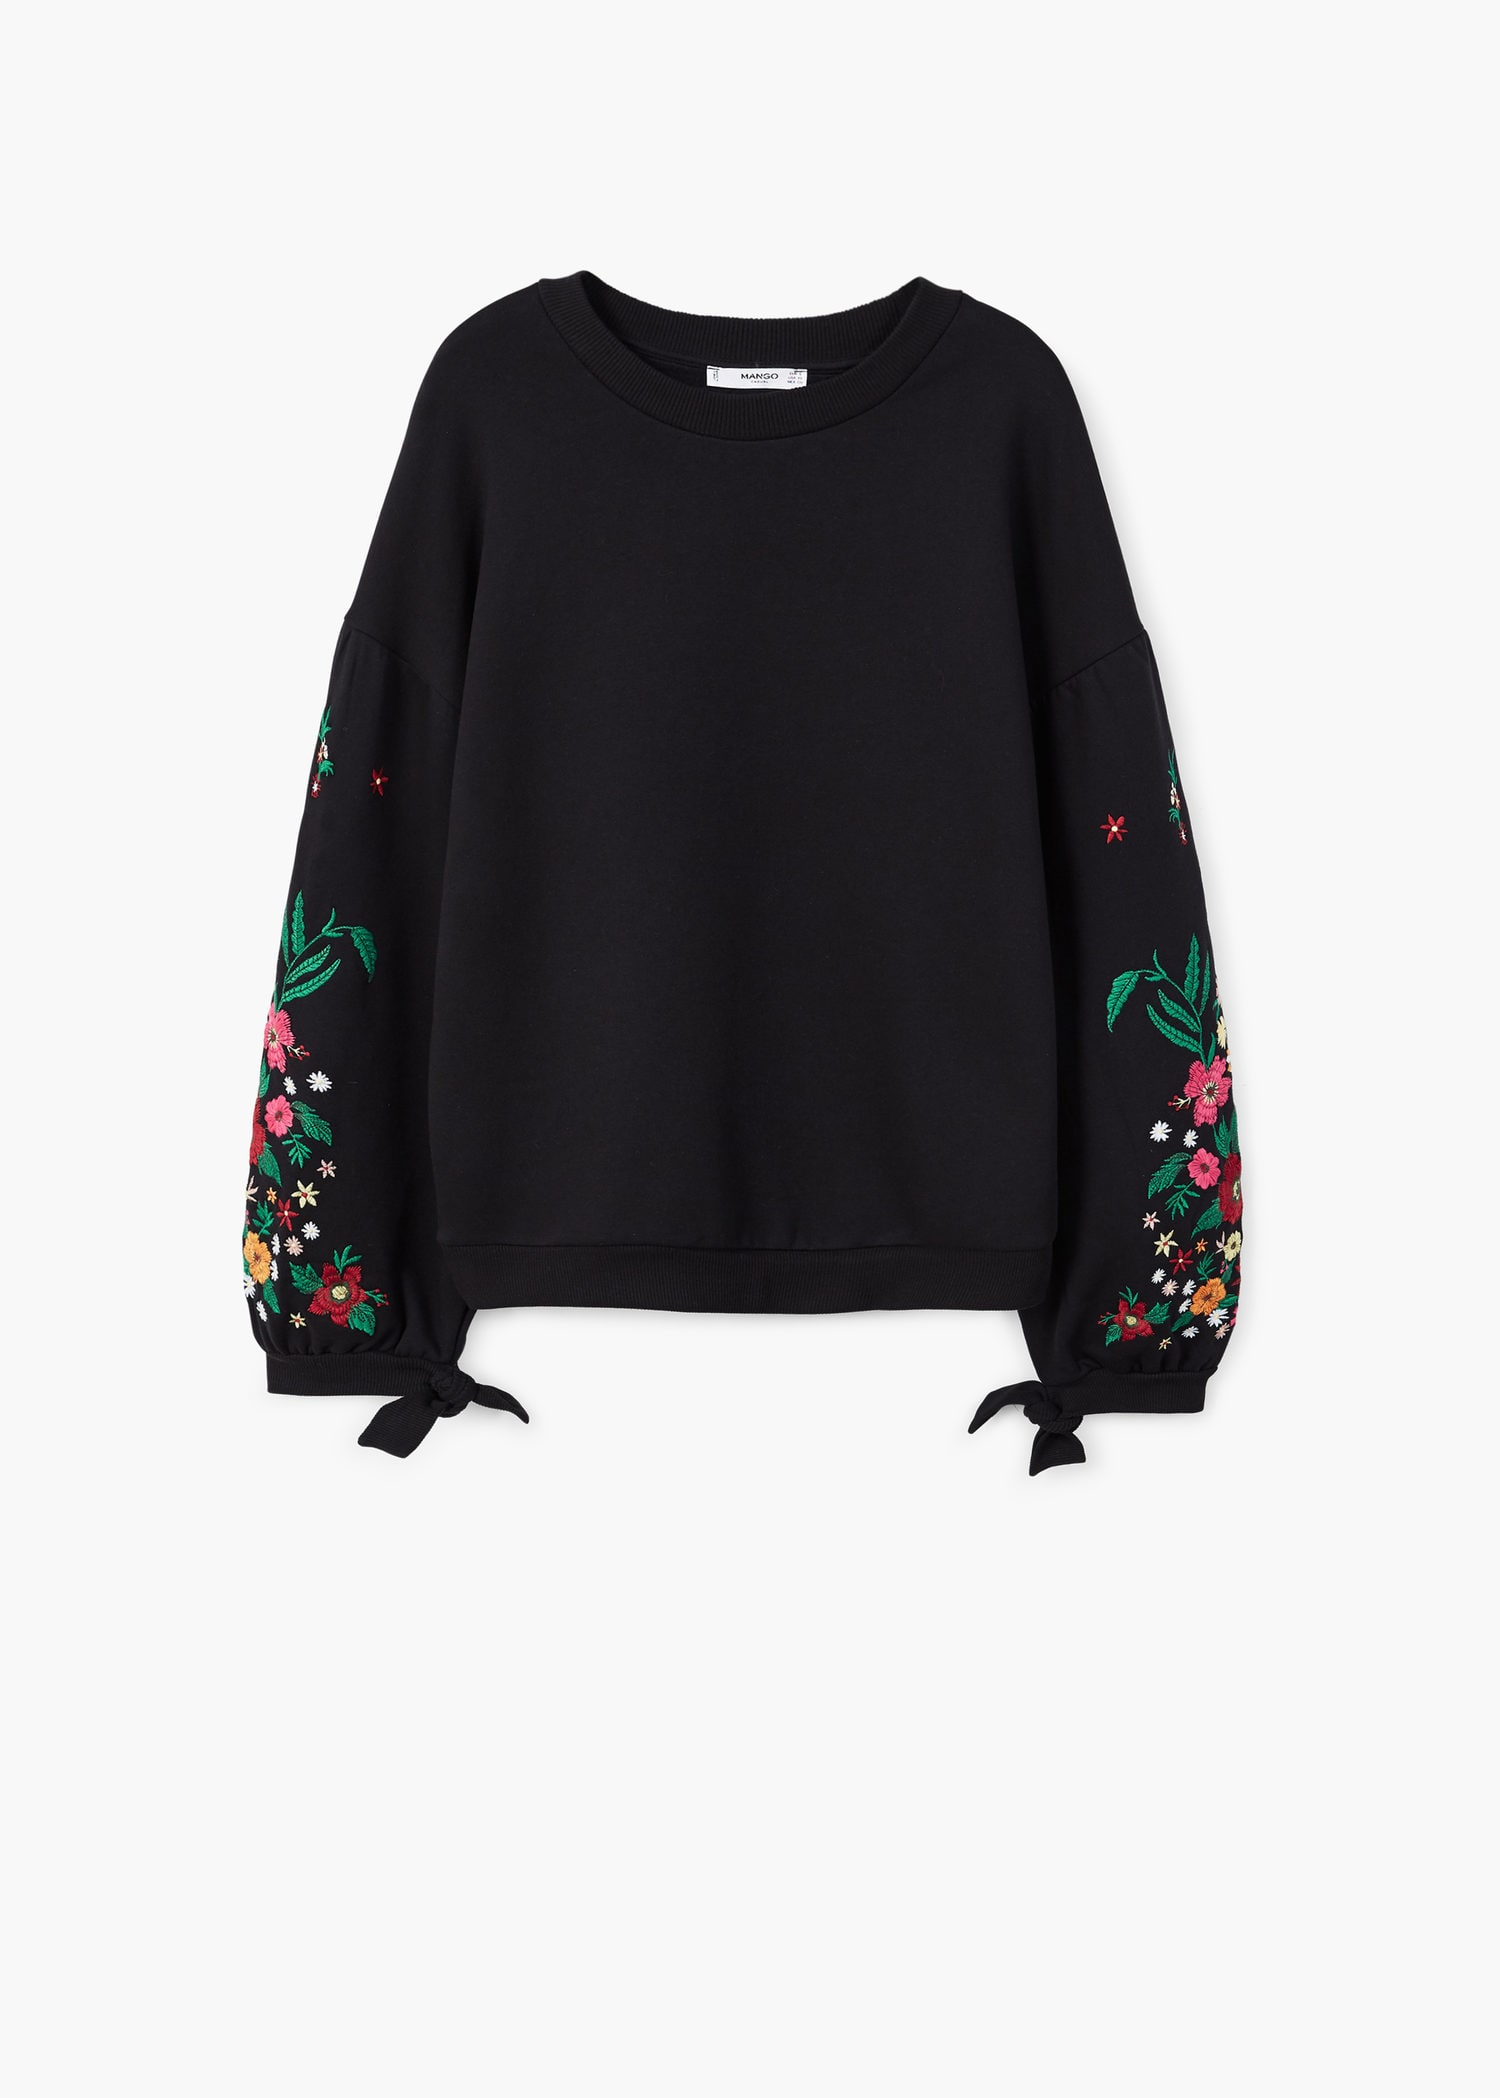 Floral Embroidered Sweatshirt £35.99